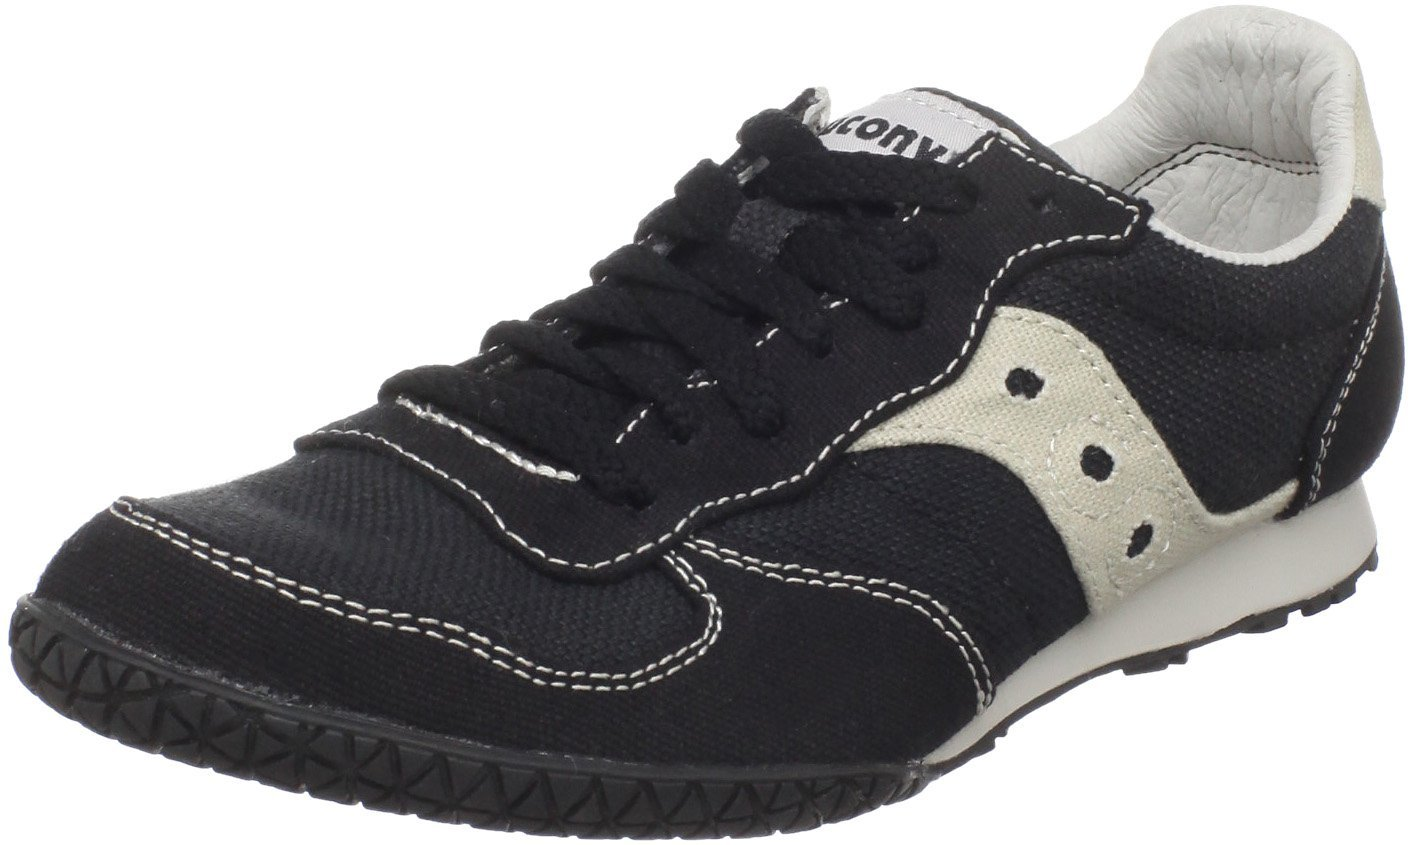 Is Saucony A Good Shoe Brand